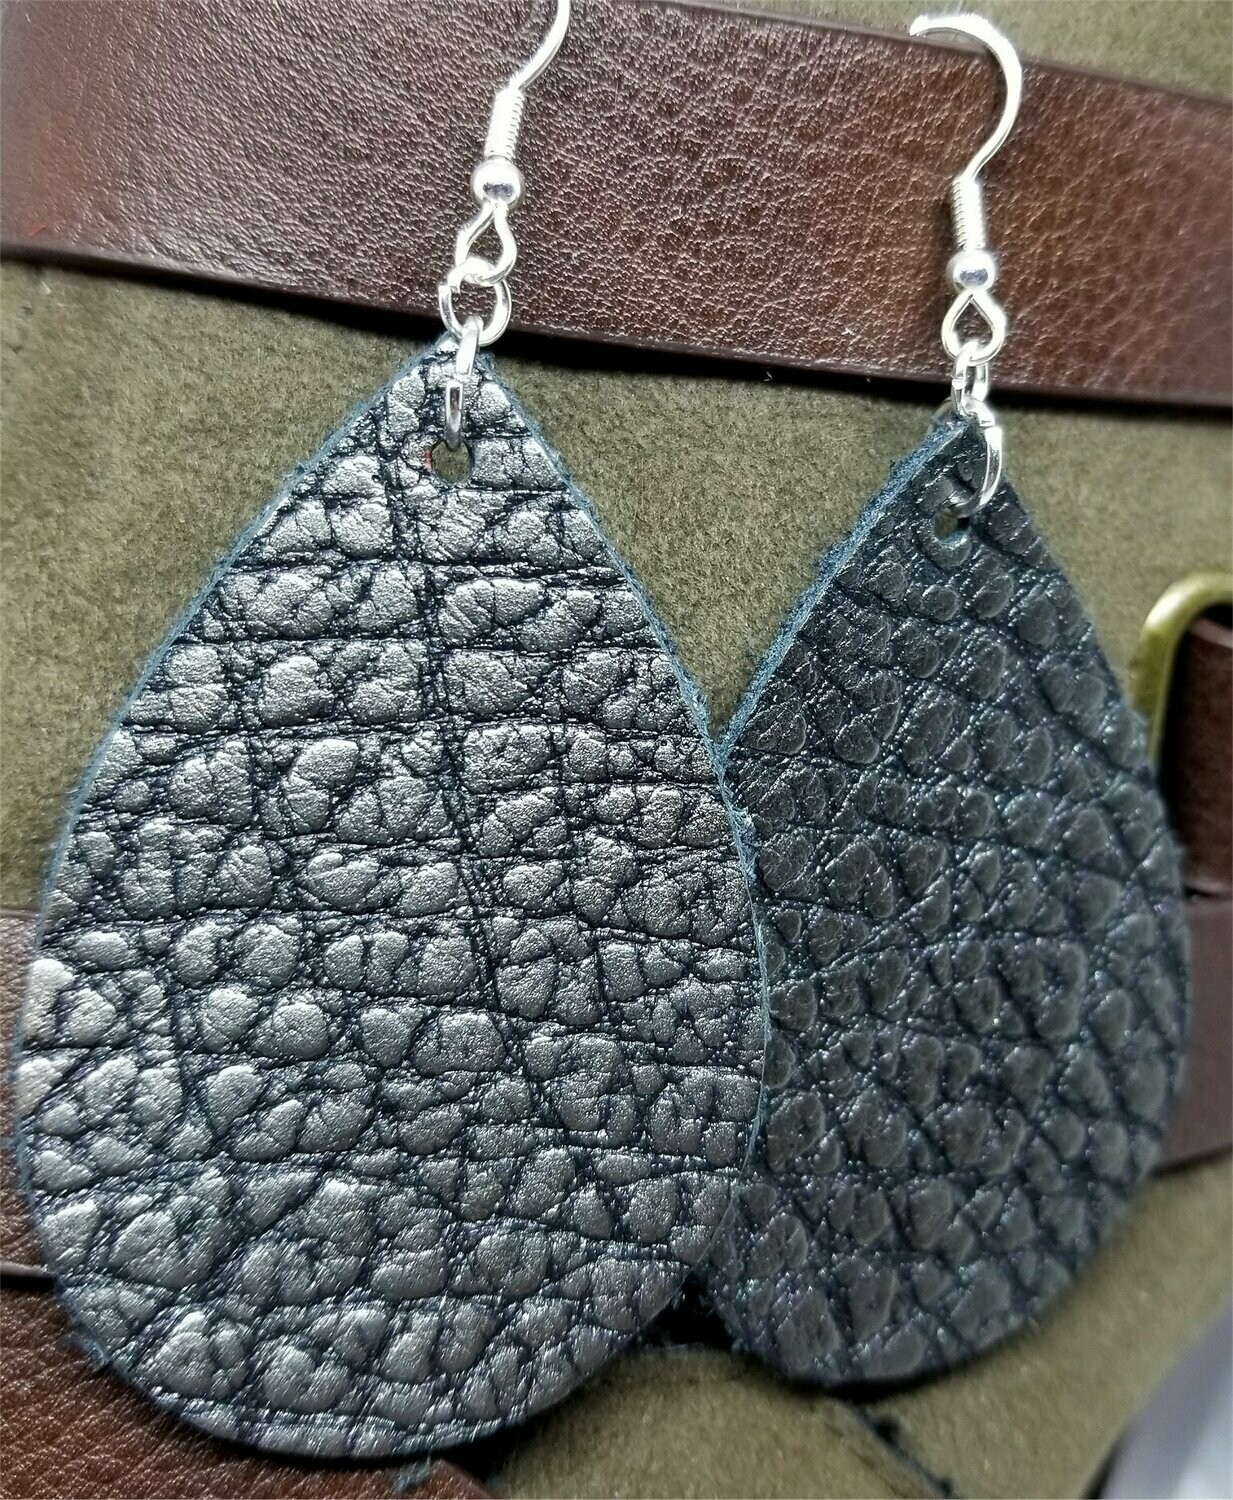 Pewter and Black Textured Teardrop Shaped Leather Earrings